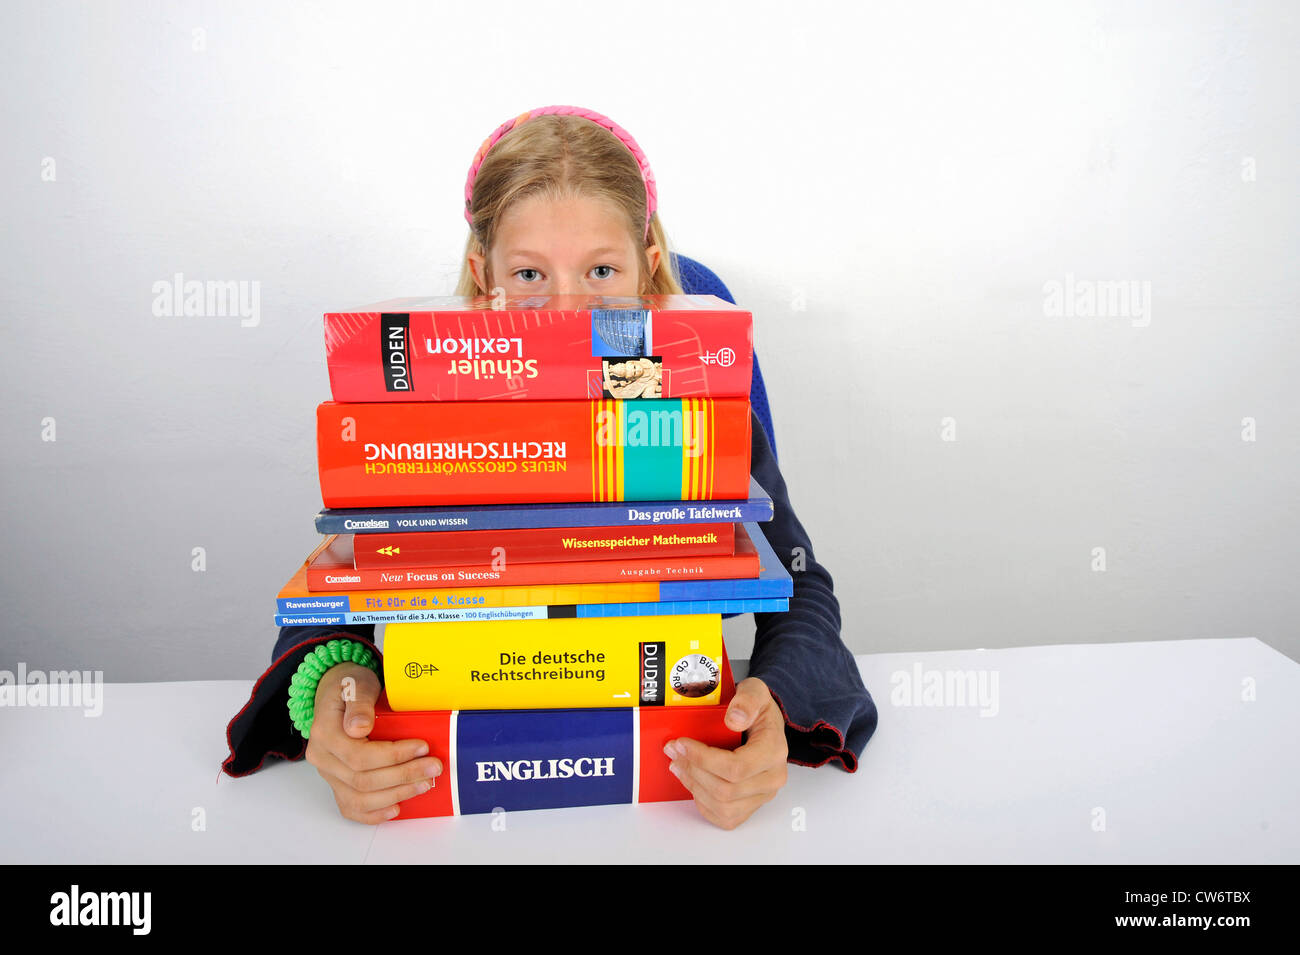 school girl with a stack of school books - Stock Image